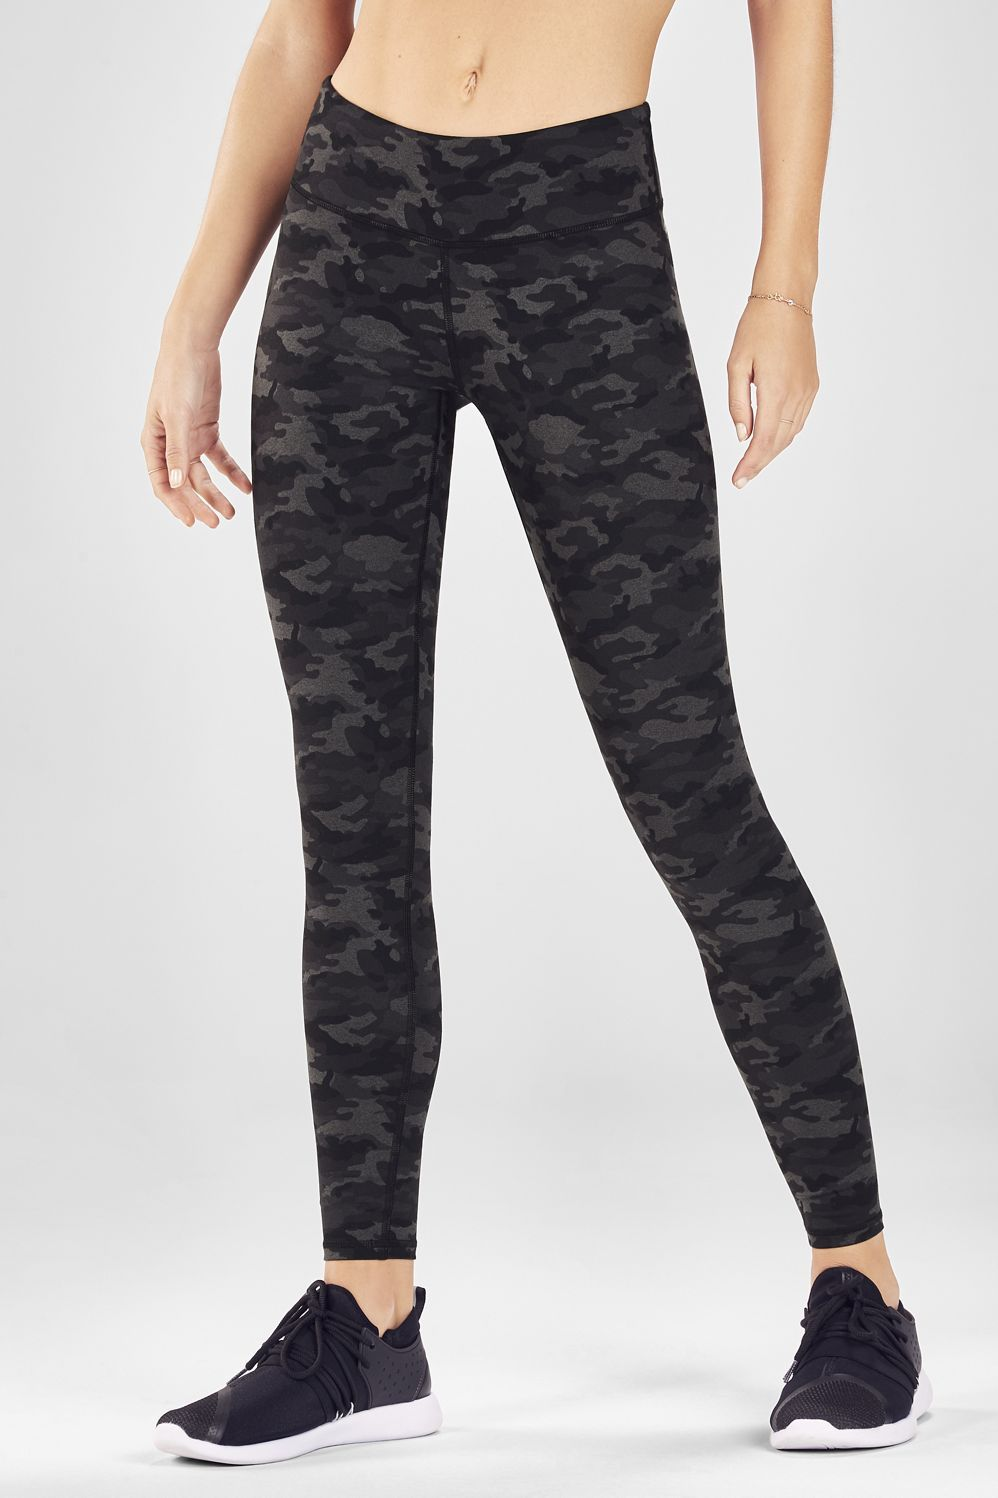 5f38d55d81f61 Salar Printed Heathered Legging in 2019 | Work out/Lounge wear ...